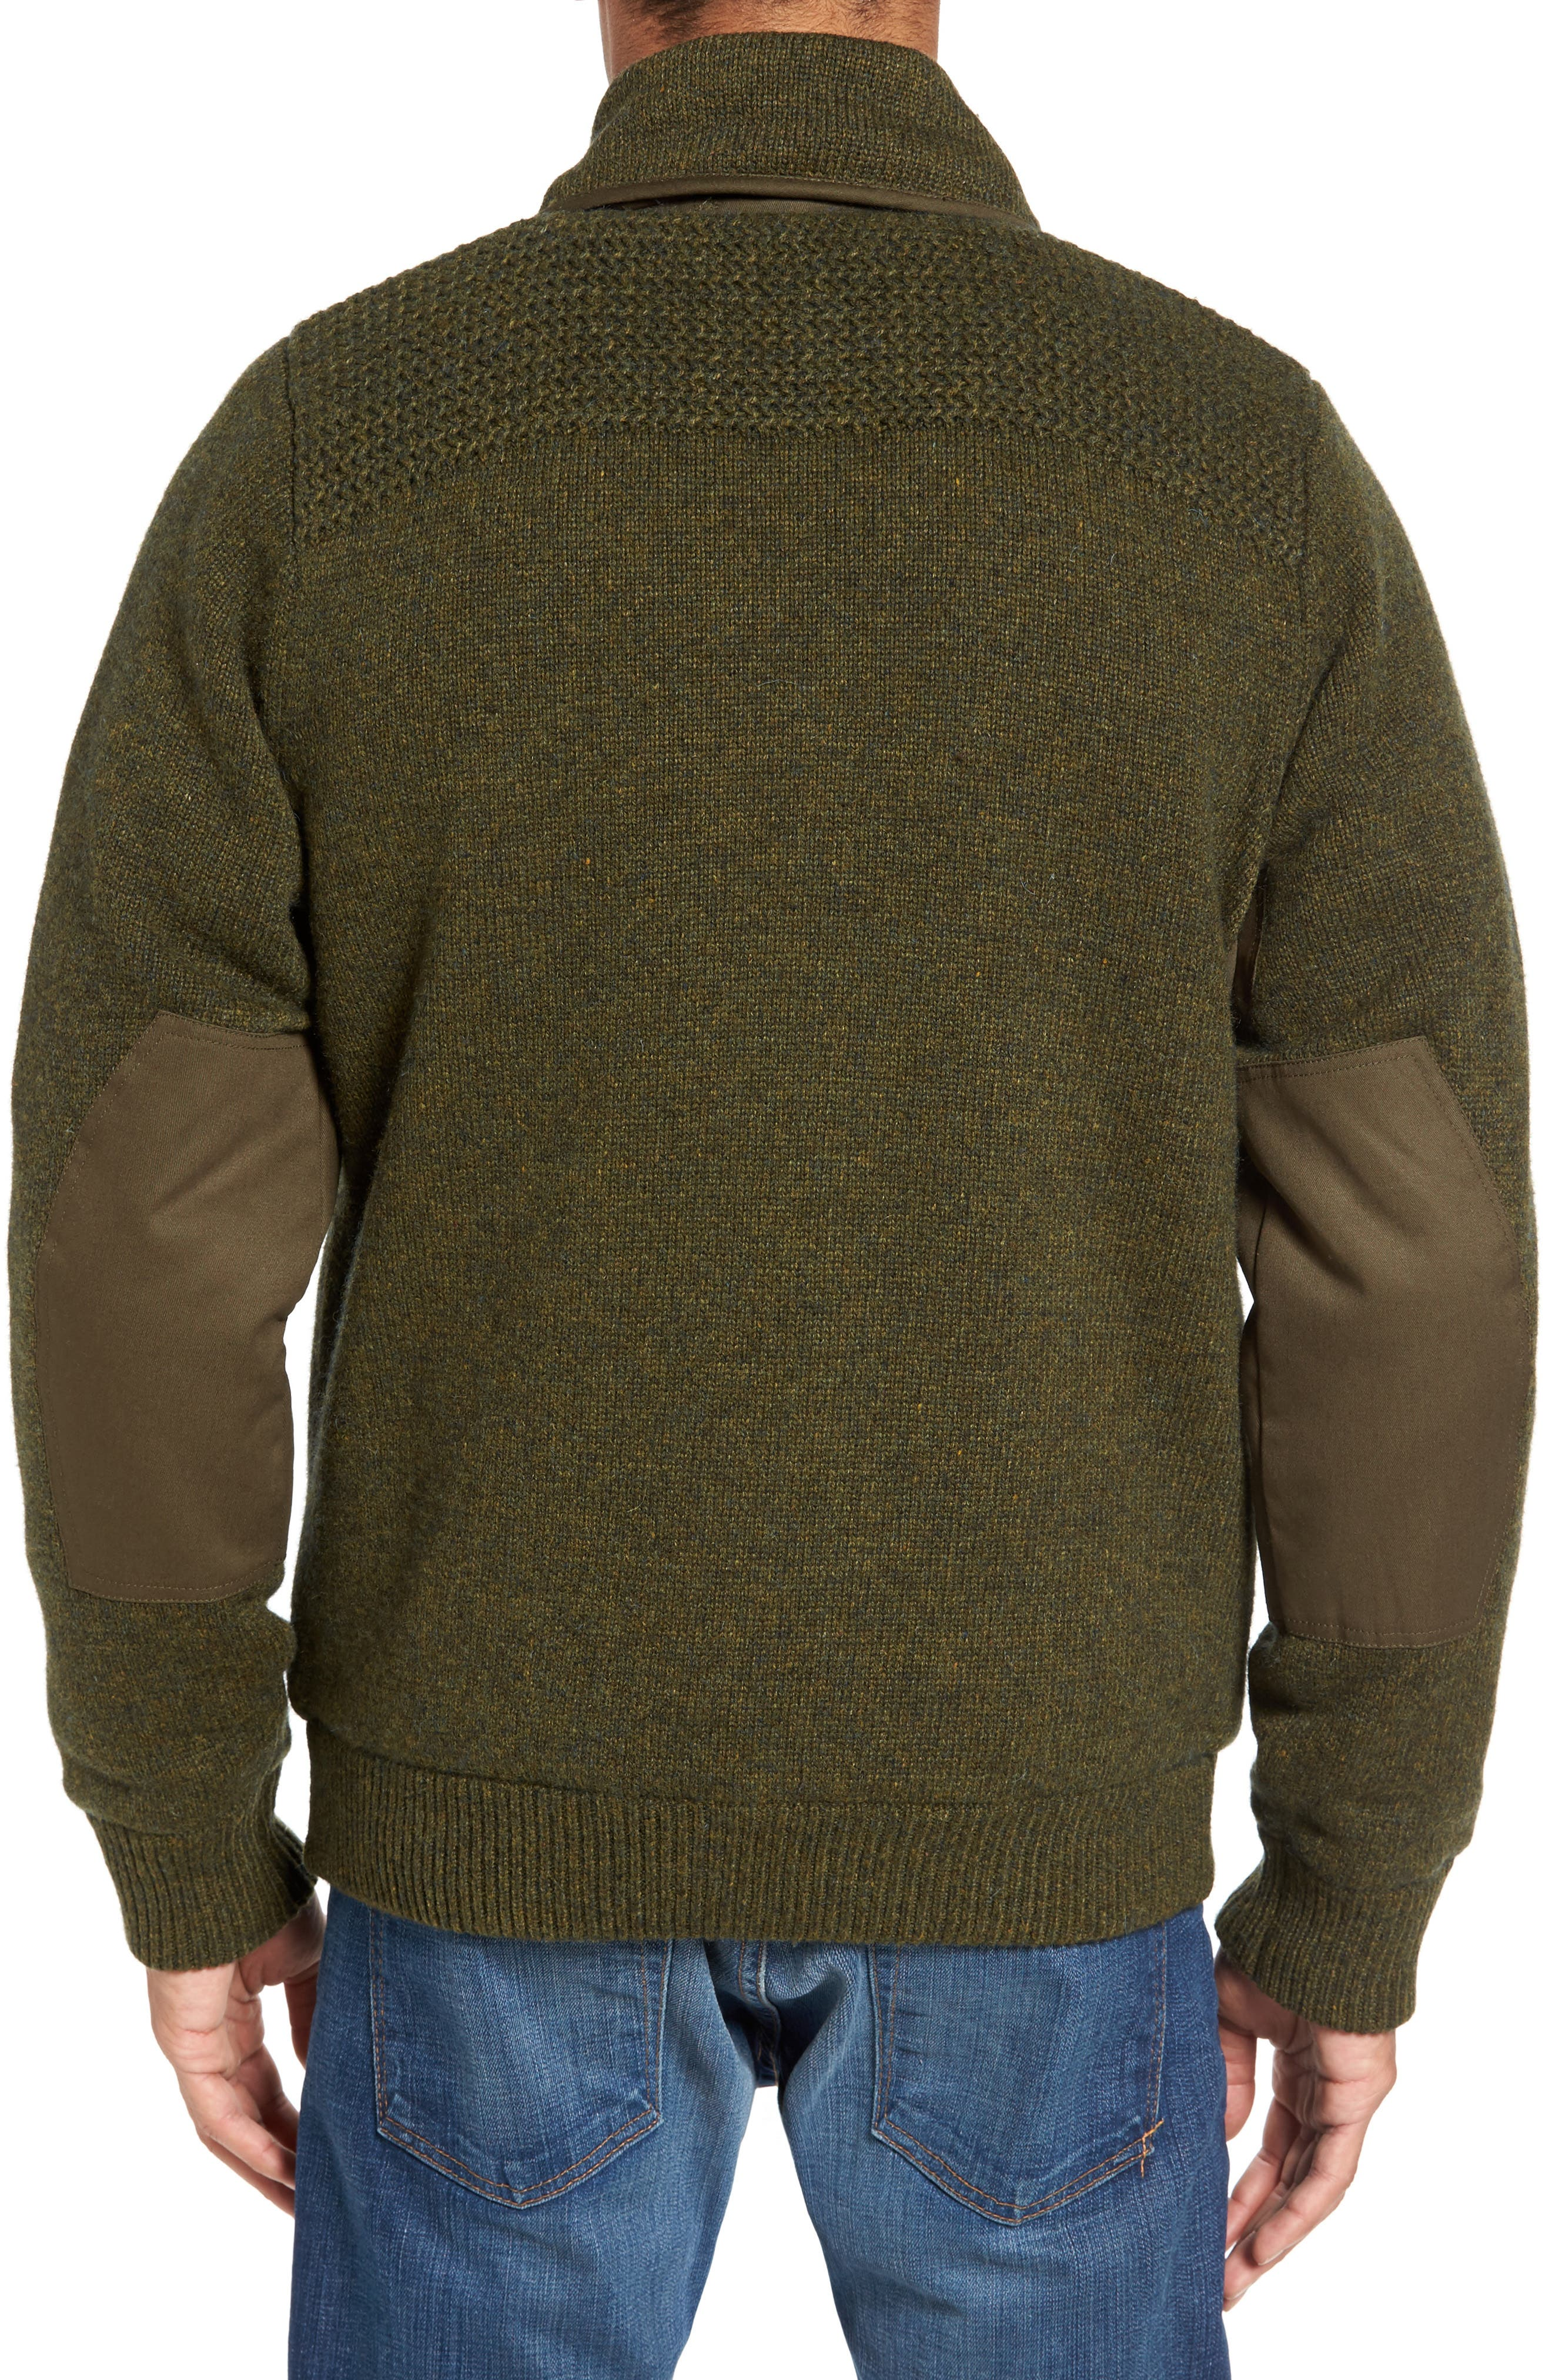 Military Sherpa-Lined Sweater Jacket,                             Alternate thumbnail 6, color,